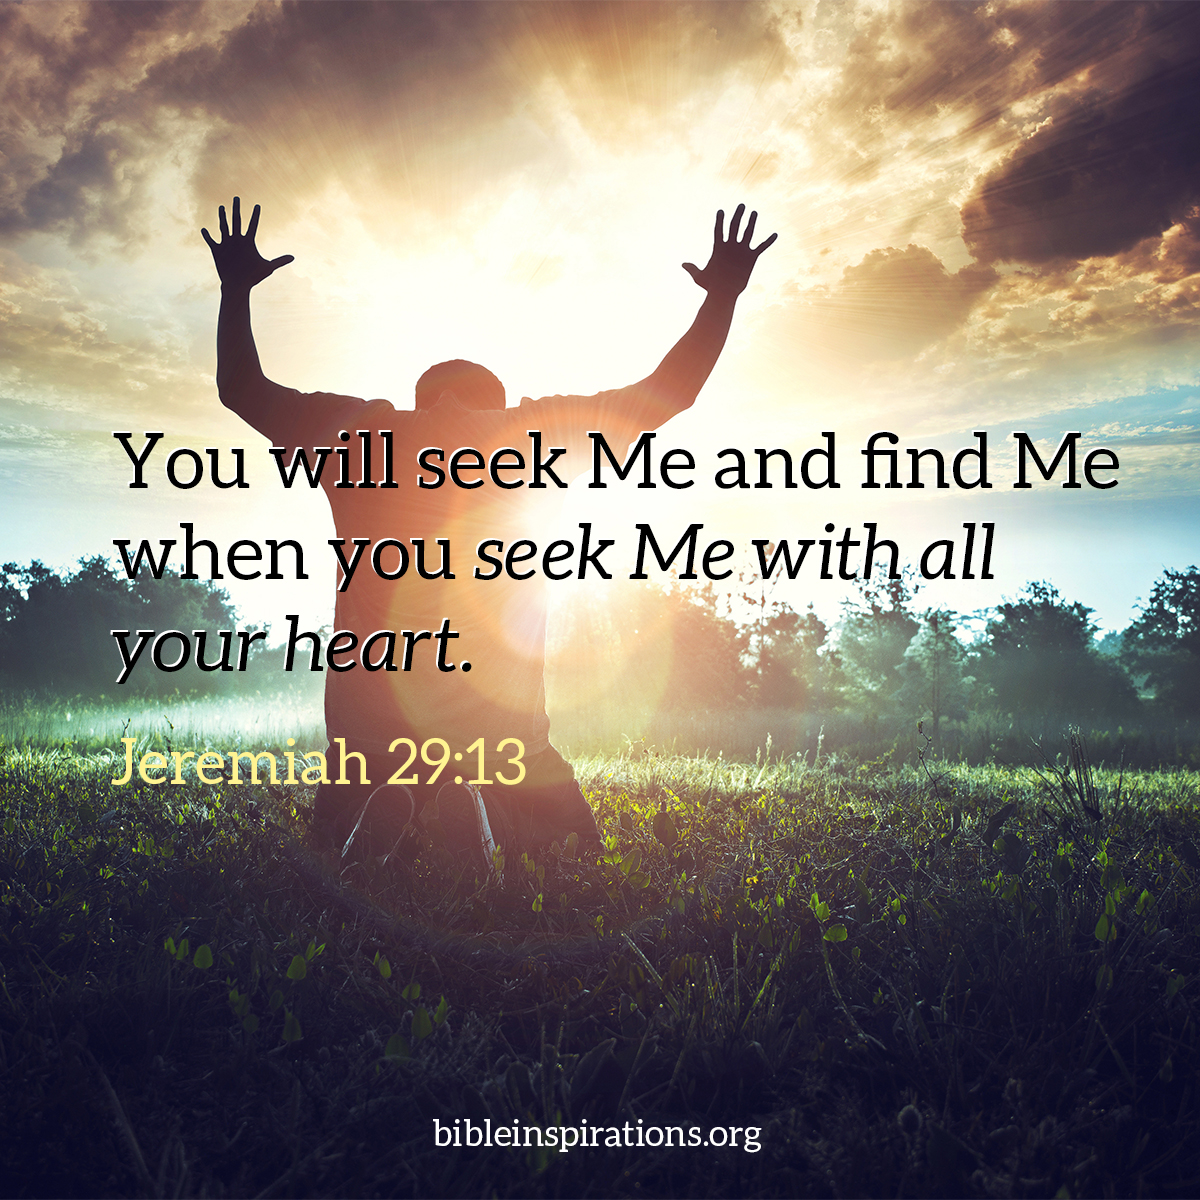 jeremiah-29-13 You will seek Me and find Me when you seek Me with all your heart.